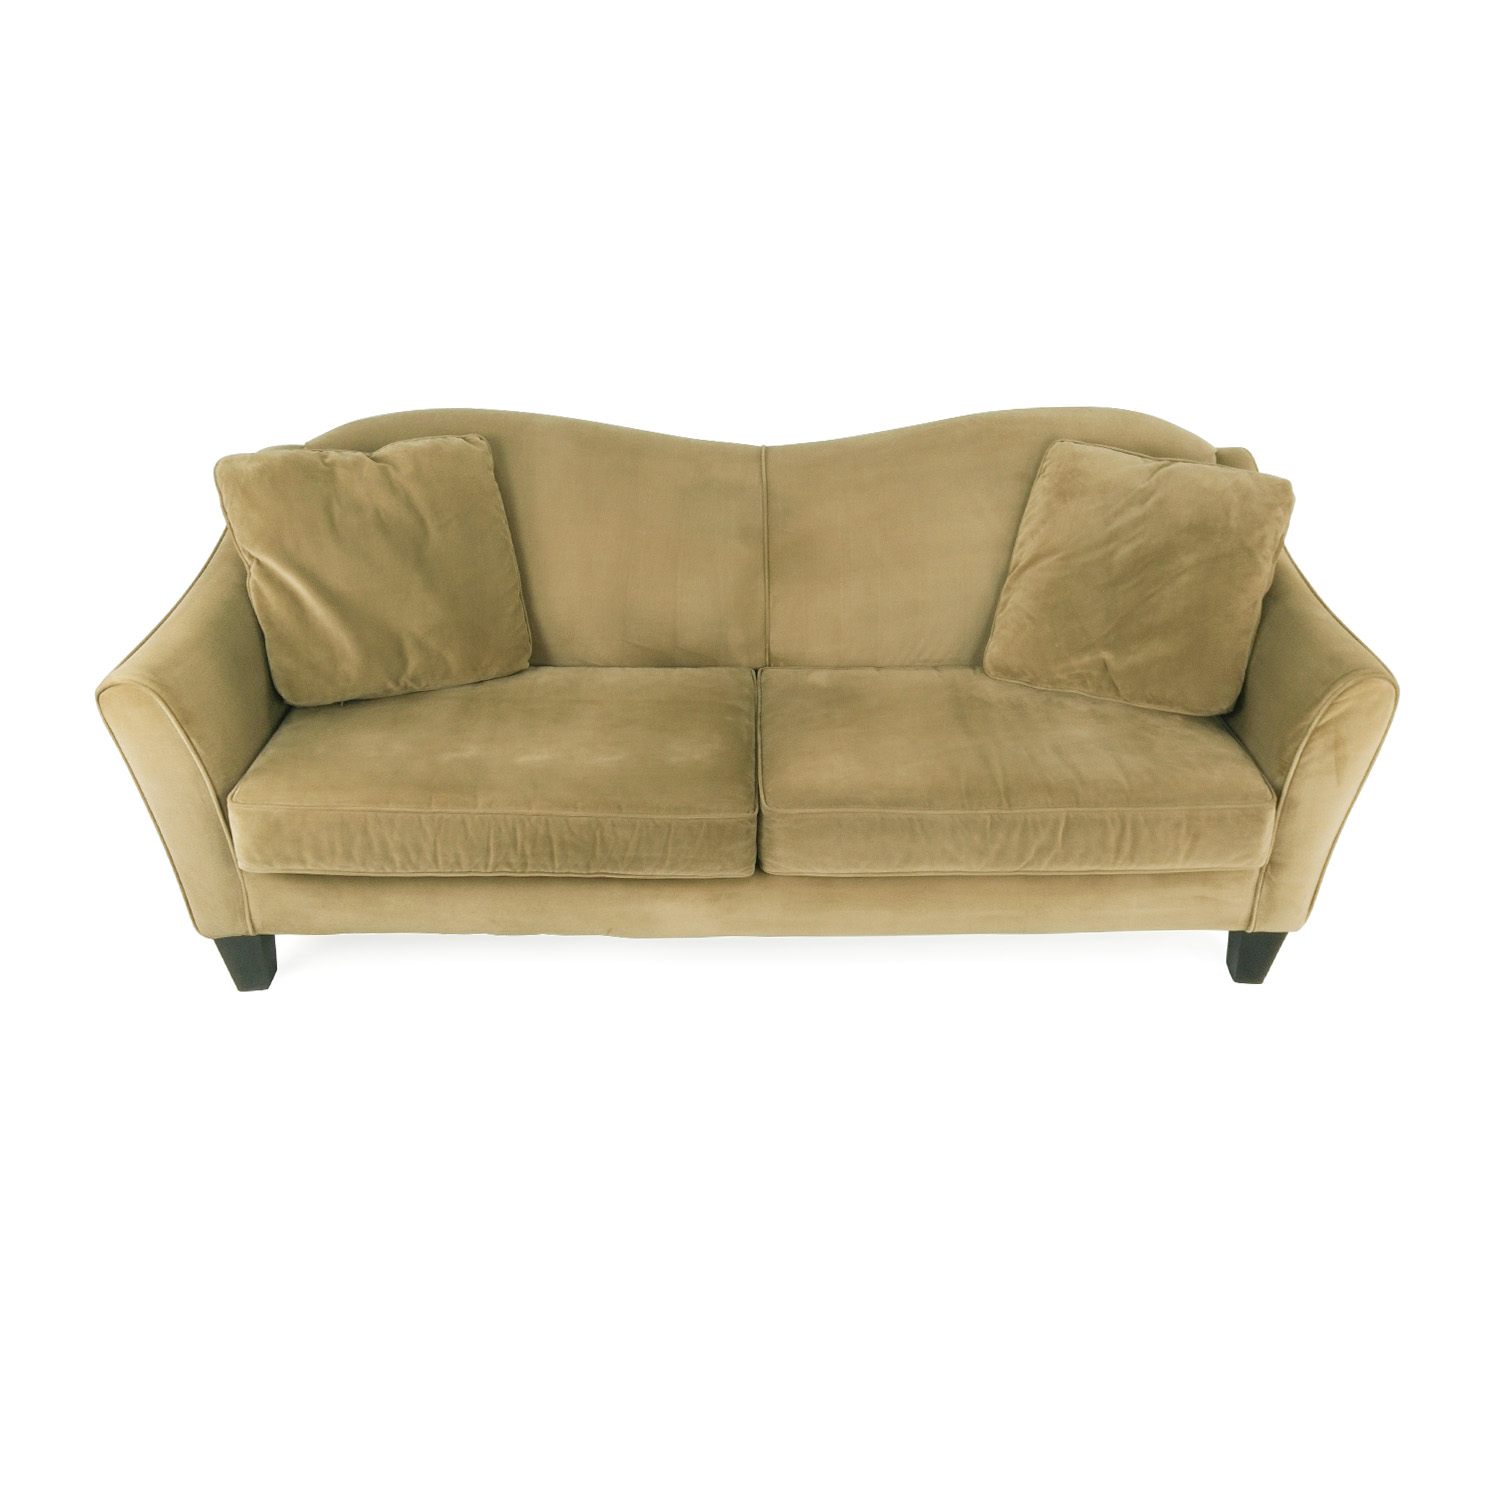 raymour and flanigan sectional sofas good quality fabric 75 off